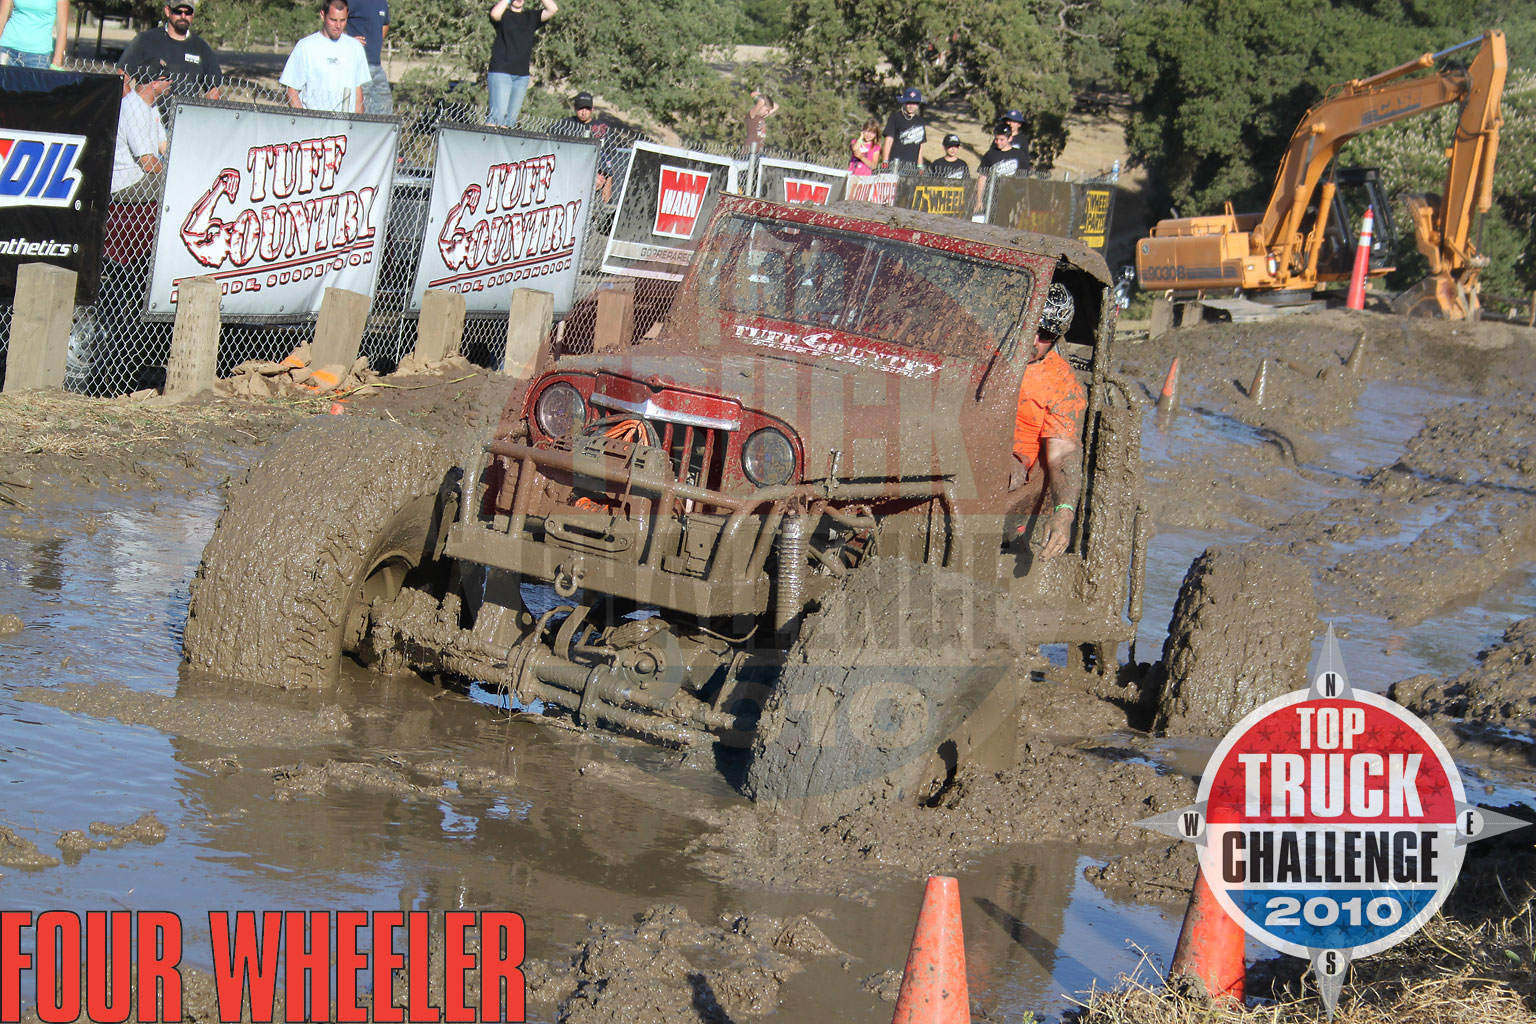 2010 Top Truck Challenge Mud Pit Pj Hale 1948 Willys Buggy